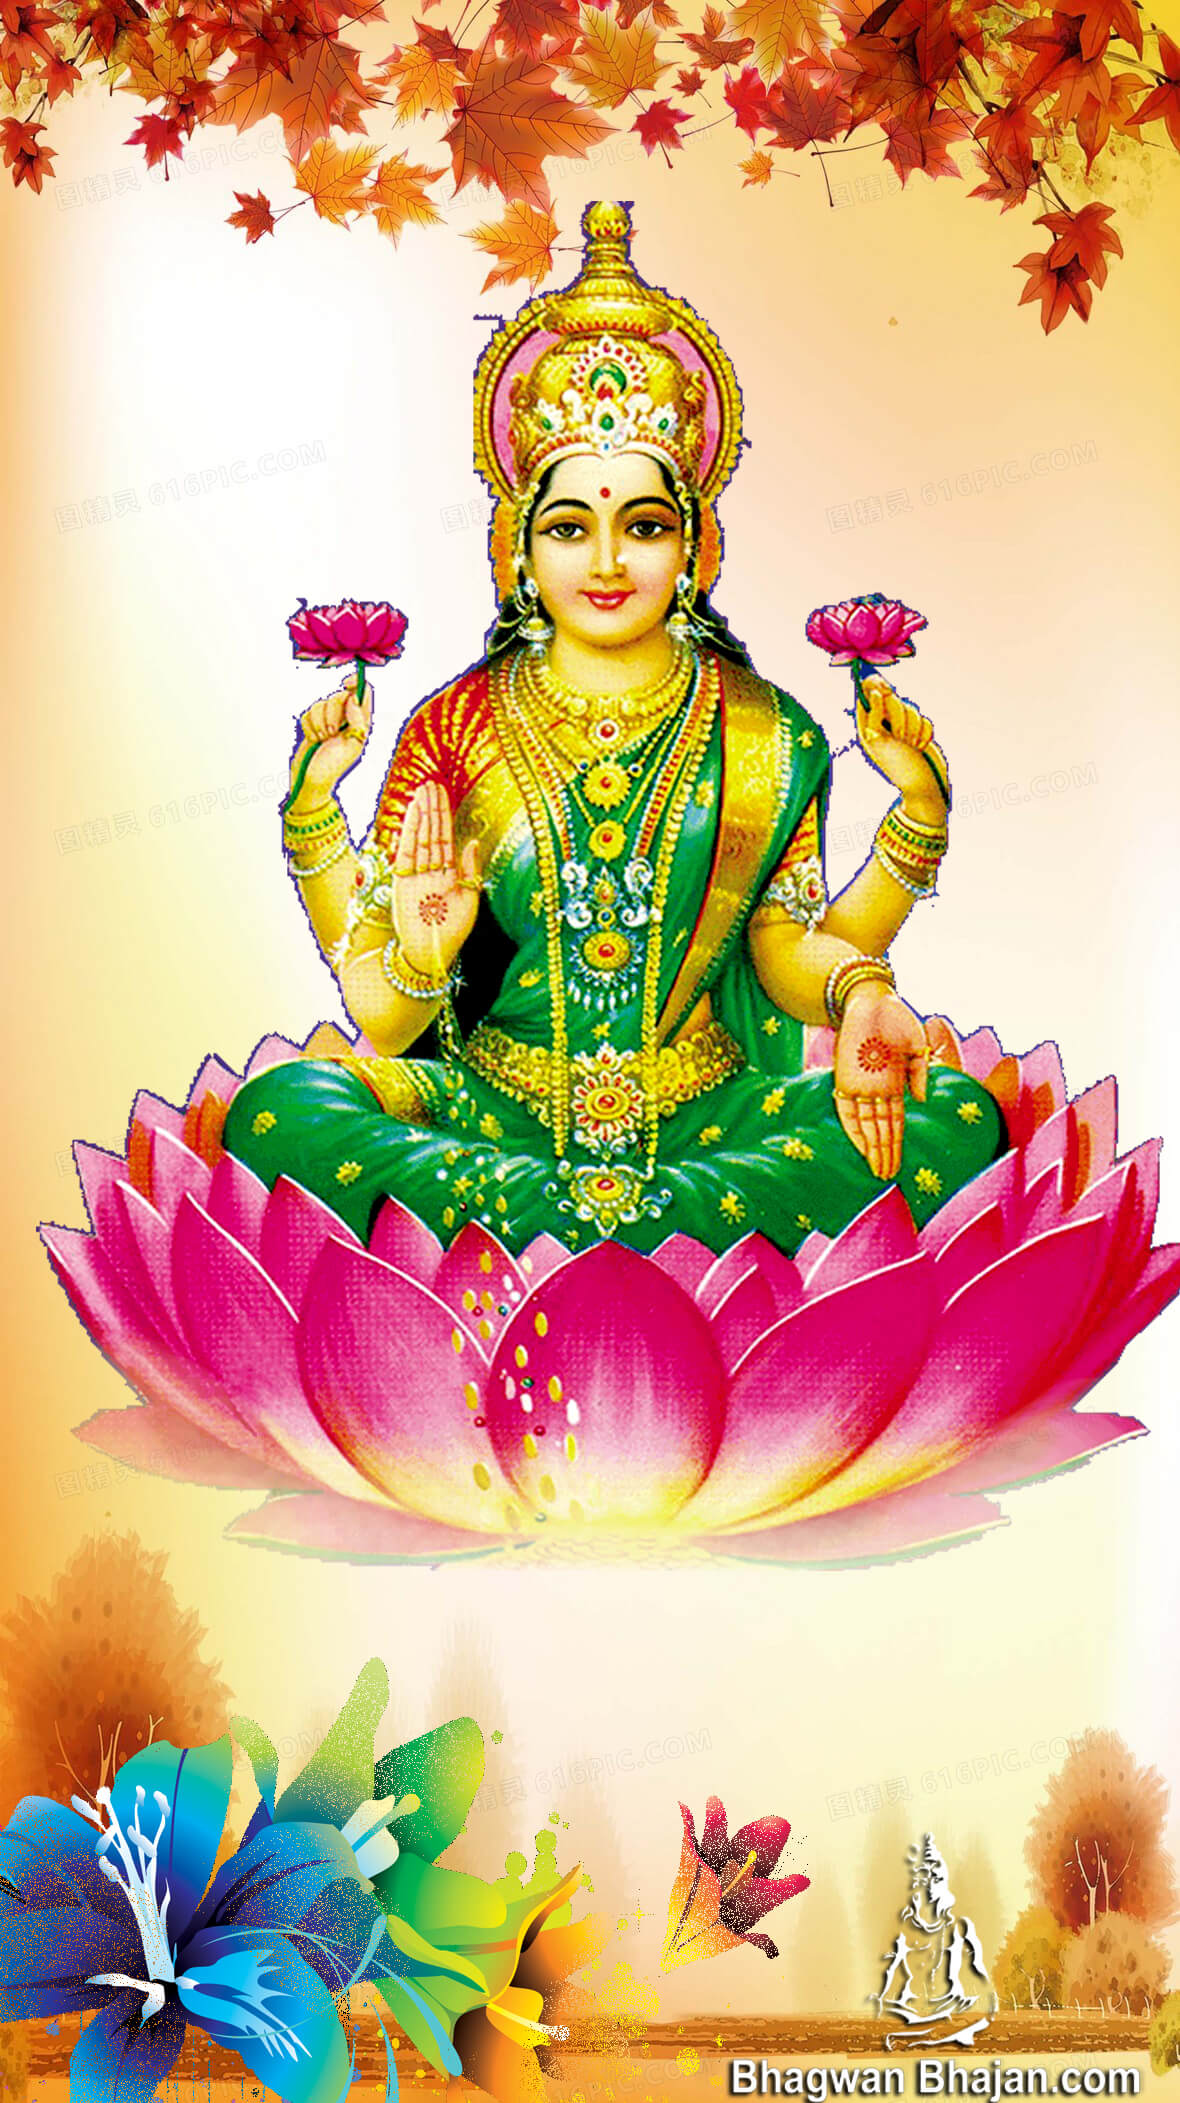 Dhanteras celebration pray to goddess lakshmi and ganesh